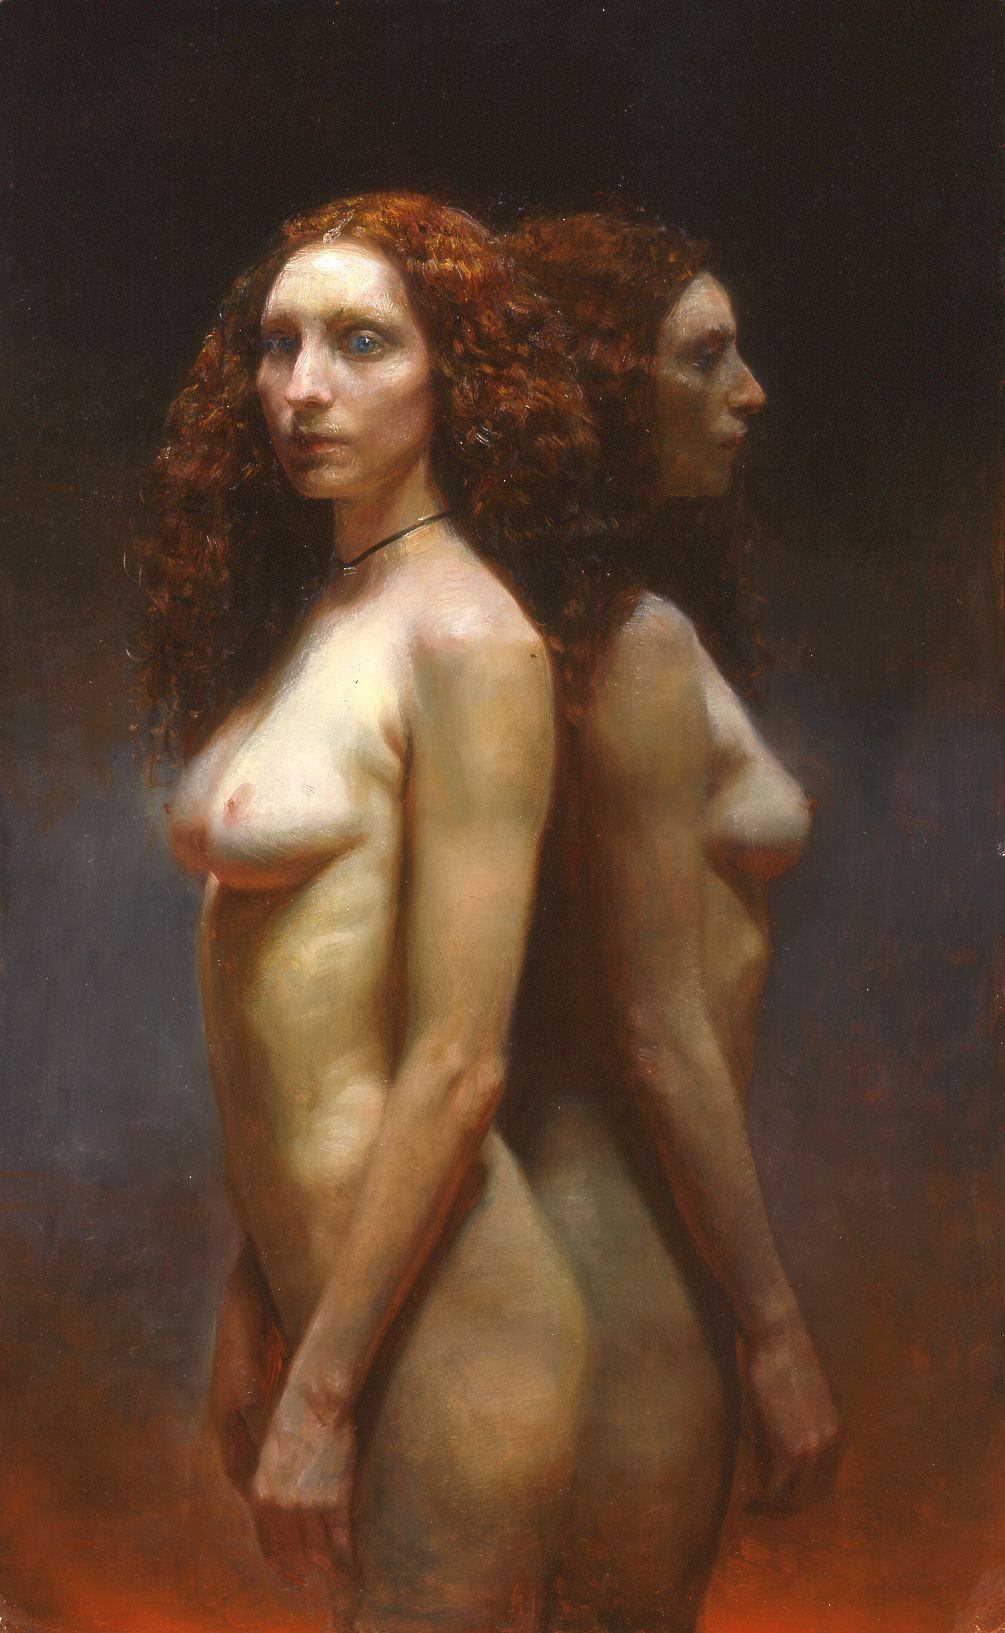 Steven Assael, Cassandra Twice, 2004, oil on board, 27 1/2 x 17 inches